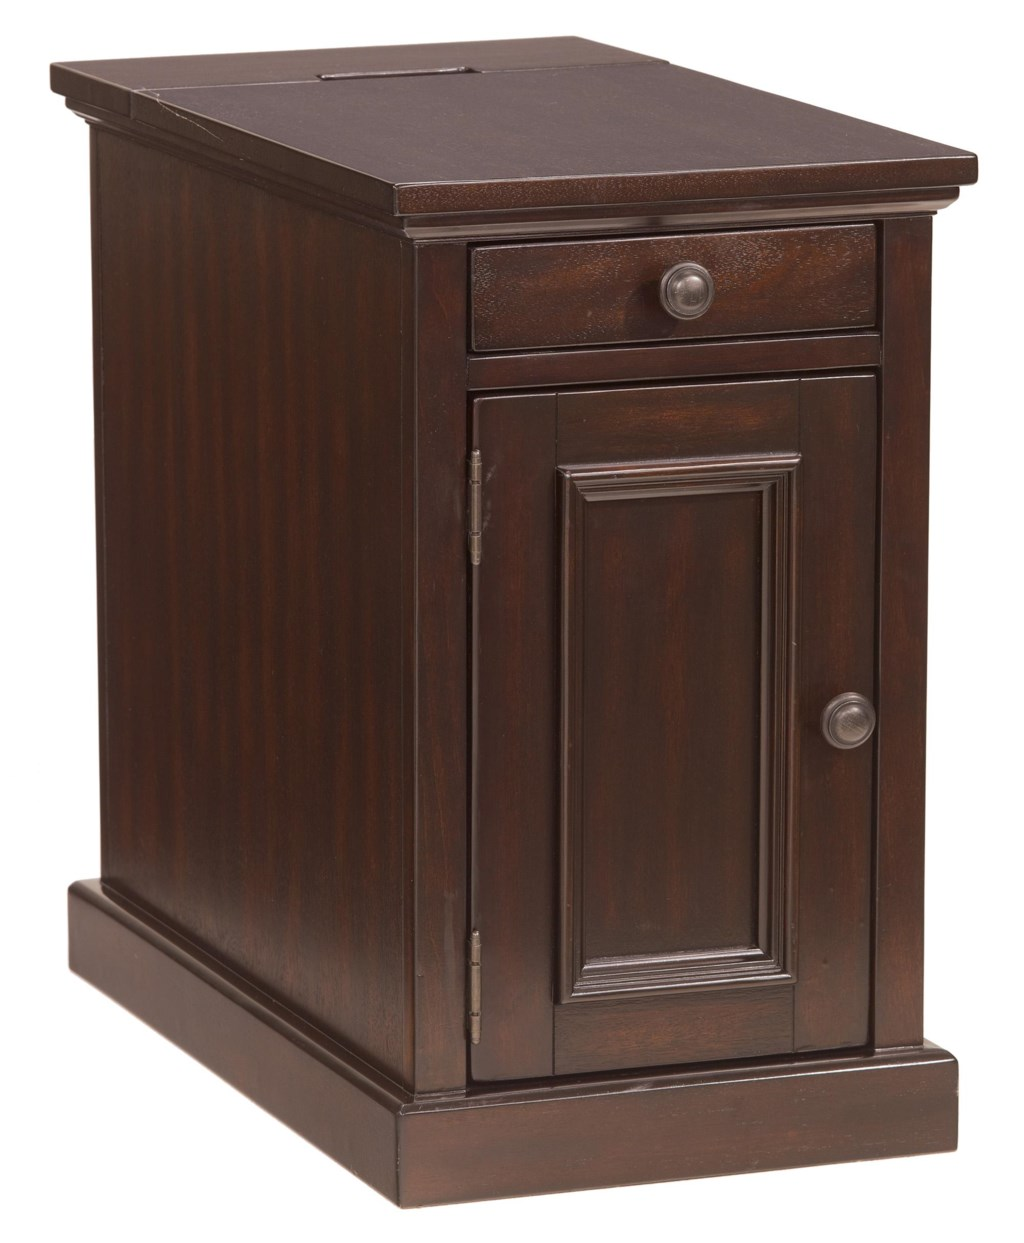 Signature Design By Ashley Laflorn Chairside End Table With Power